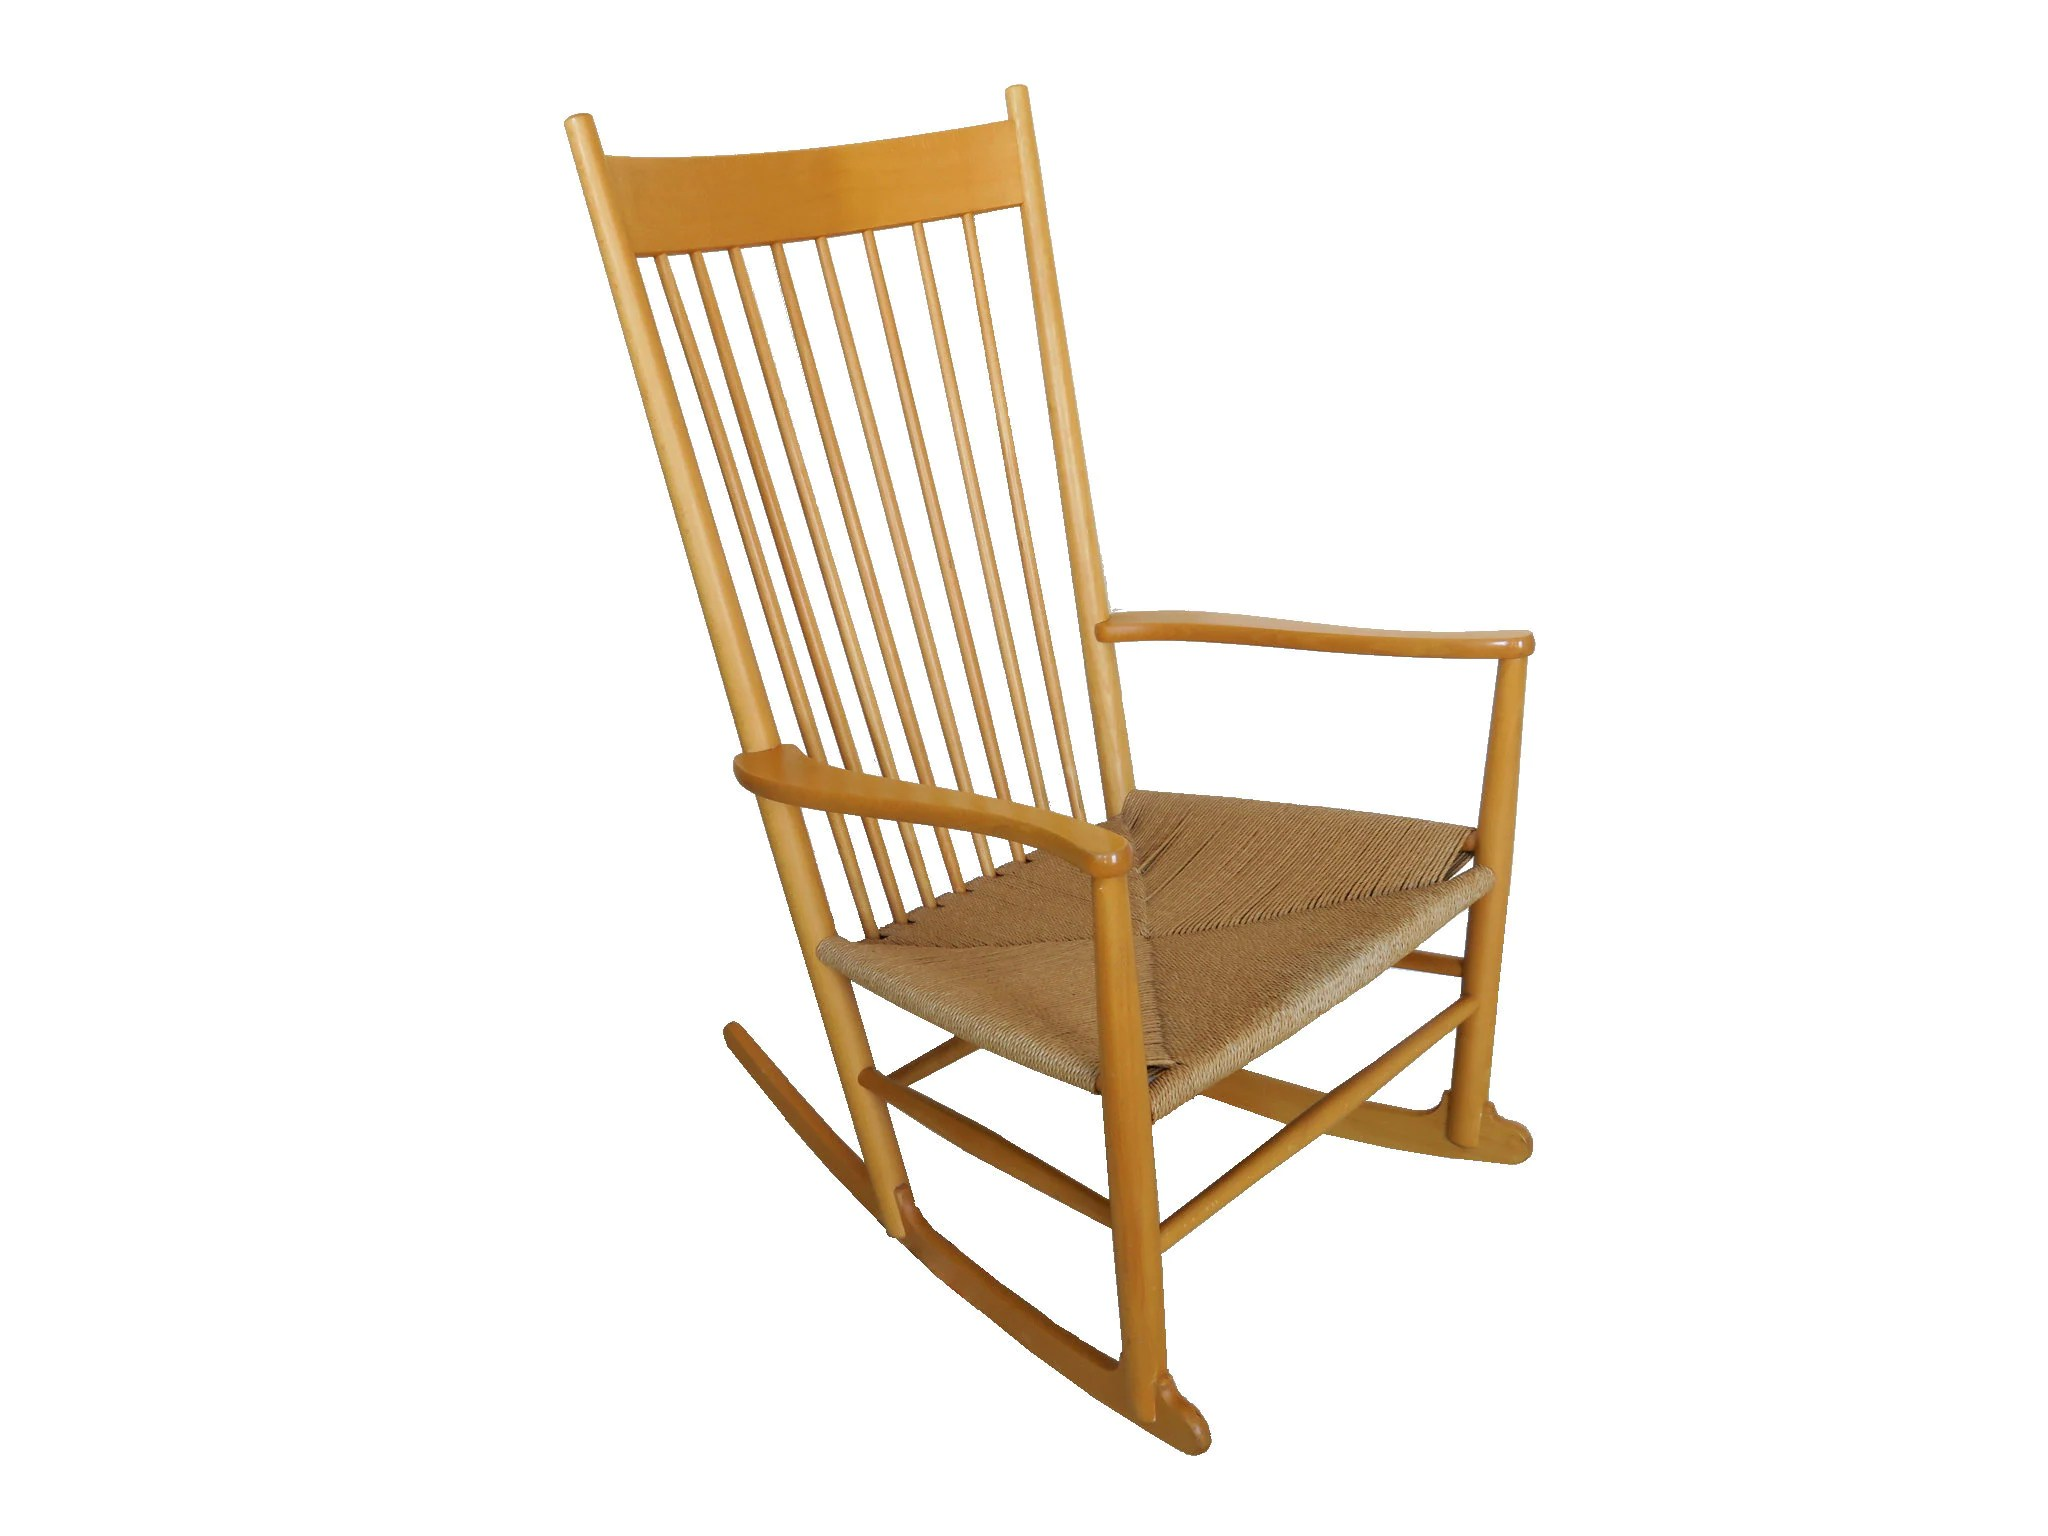 hans wegner rocking chair tables ladders and chairs j16 by fdb mobler etsy 50